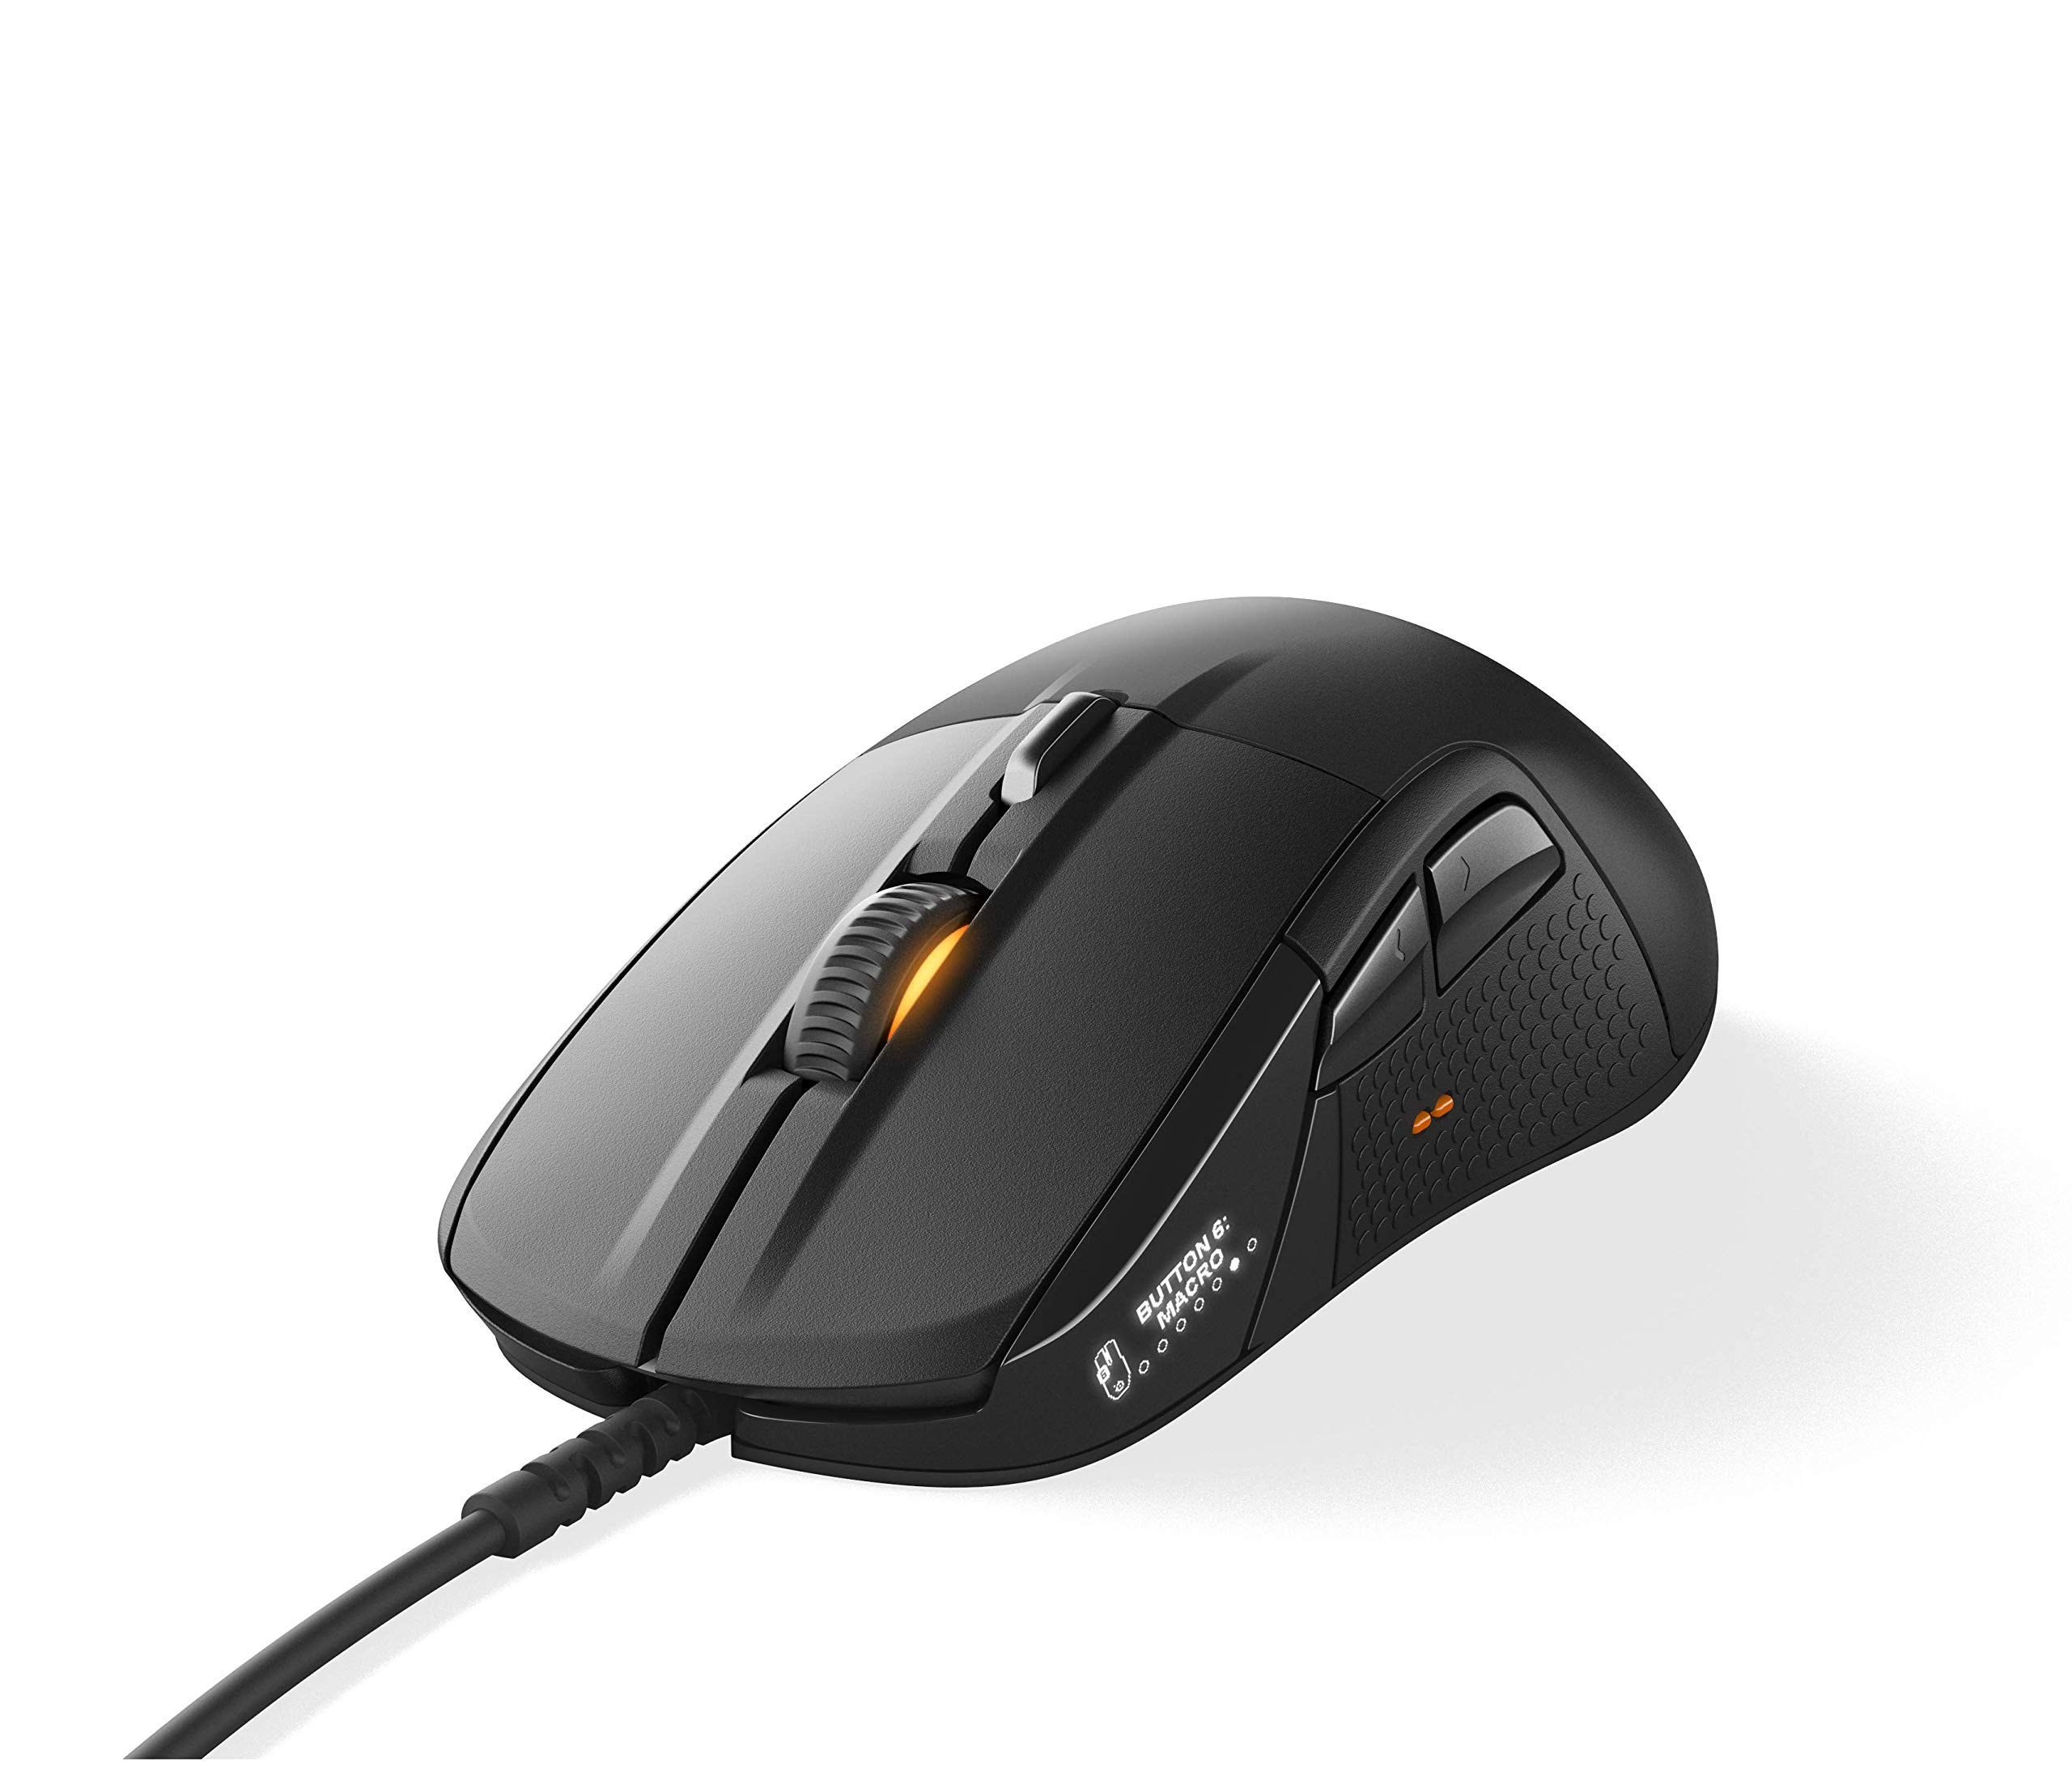 Mouse Gamer :  Steelseries Rival 710 - 16,000 Cpi Tru (slyr)